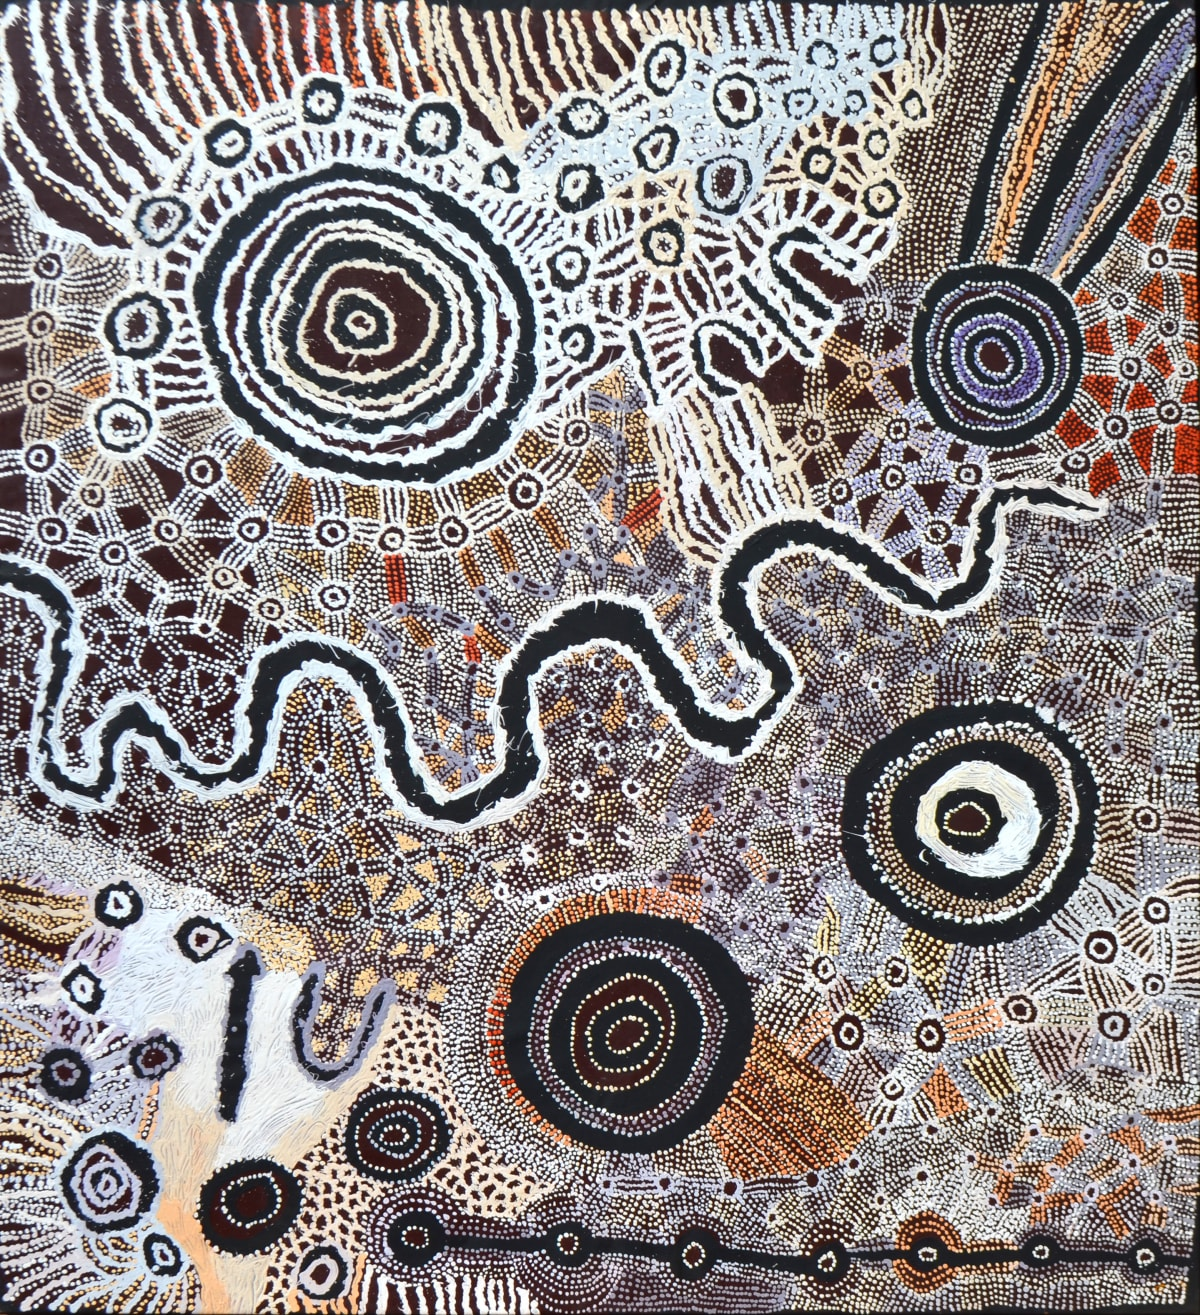 Watarru Collaborative Ilpili acrylic on linen 180 x 200 cm